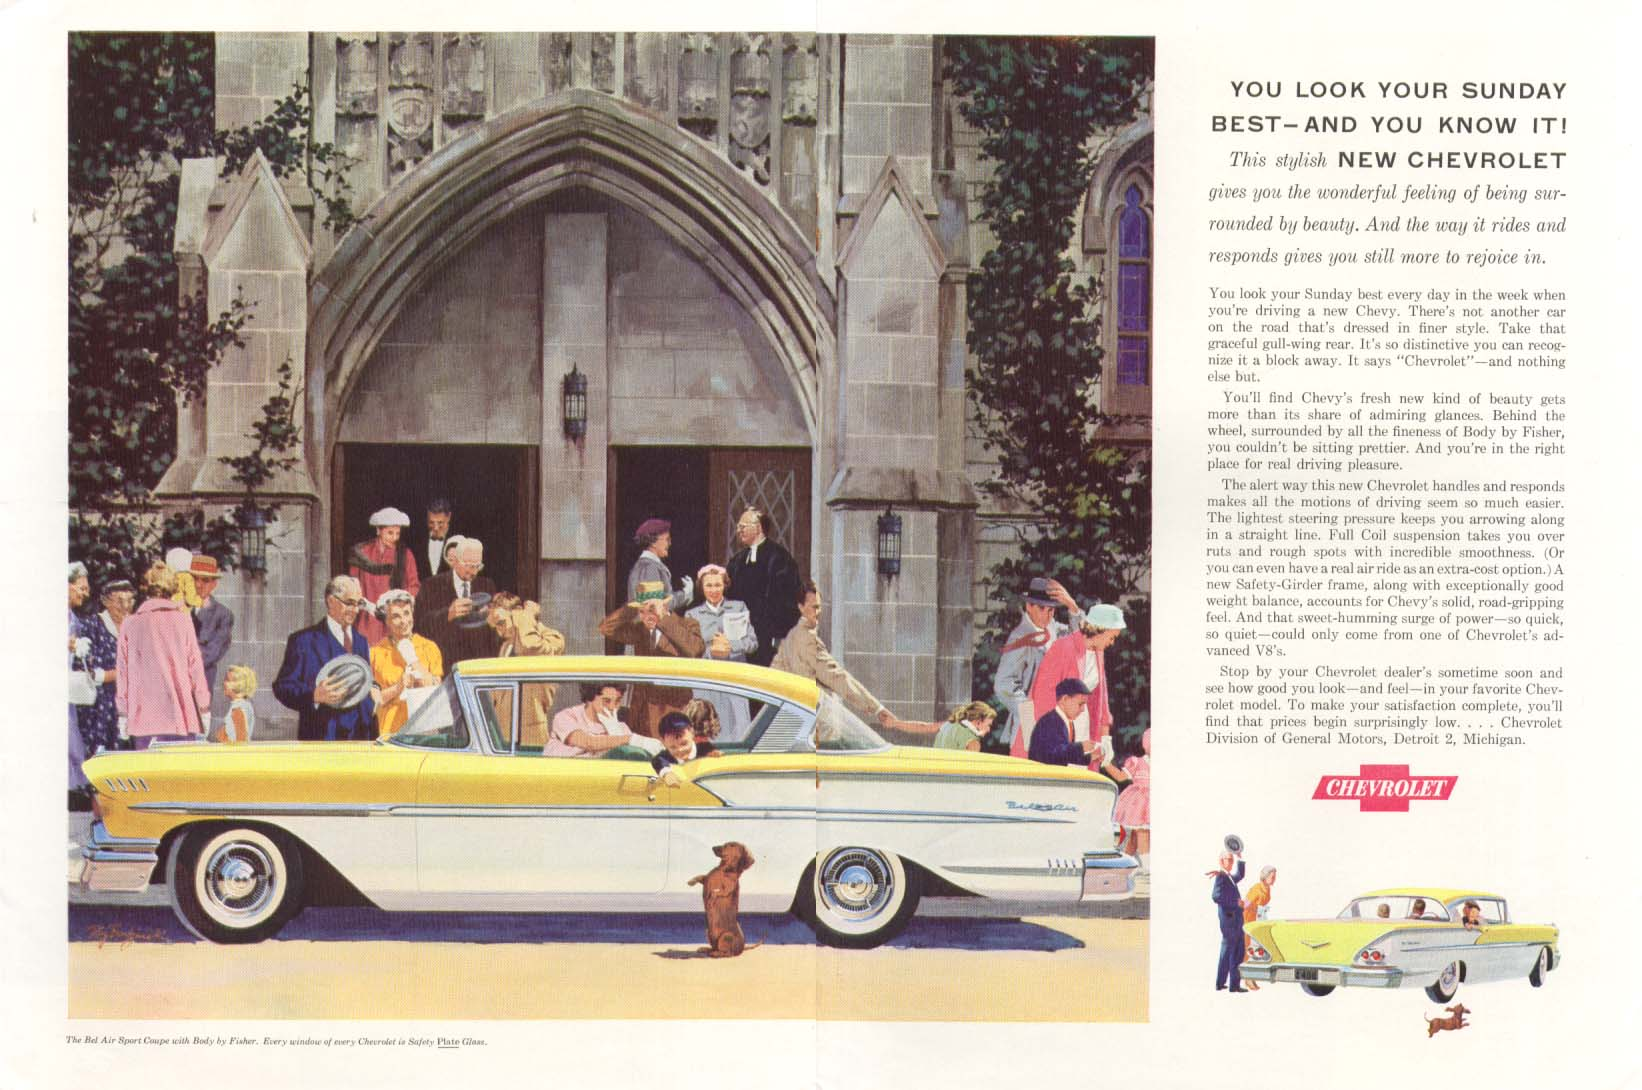 Chevrolet Bel Air Look Your Sunday Best ad 1958